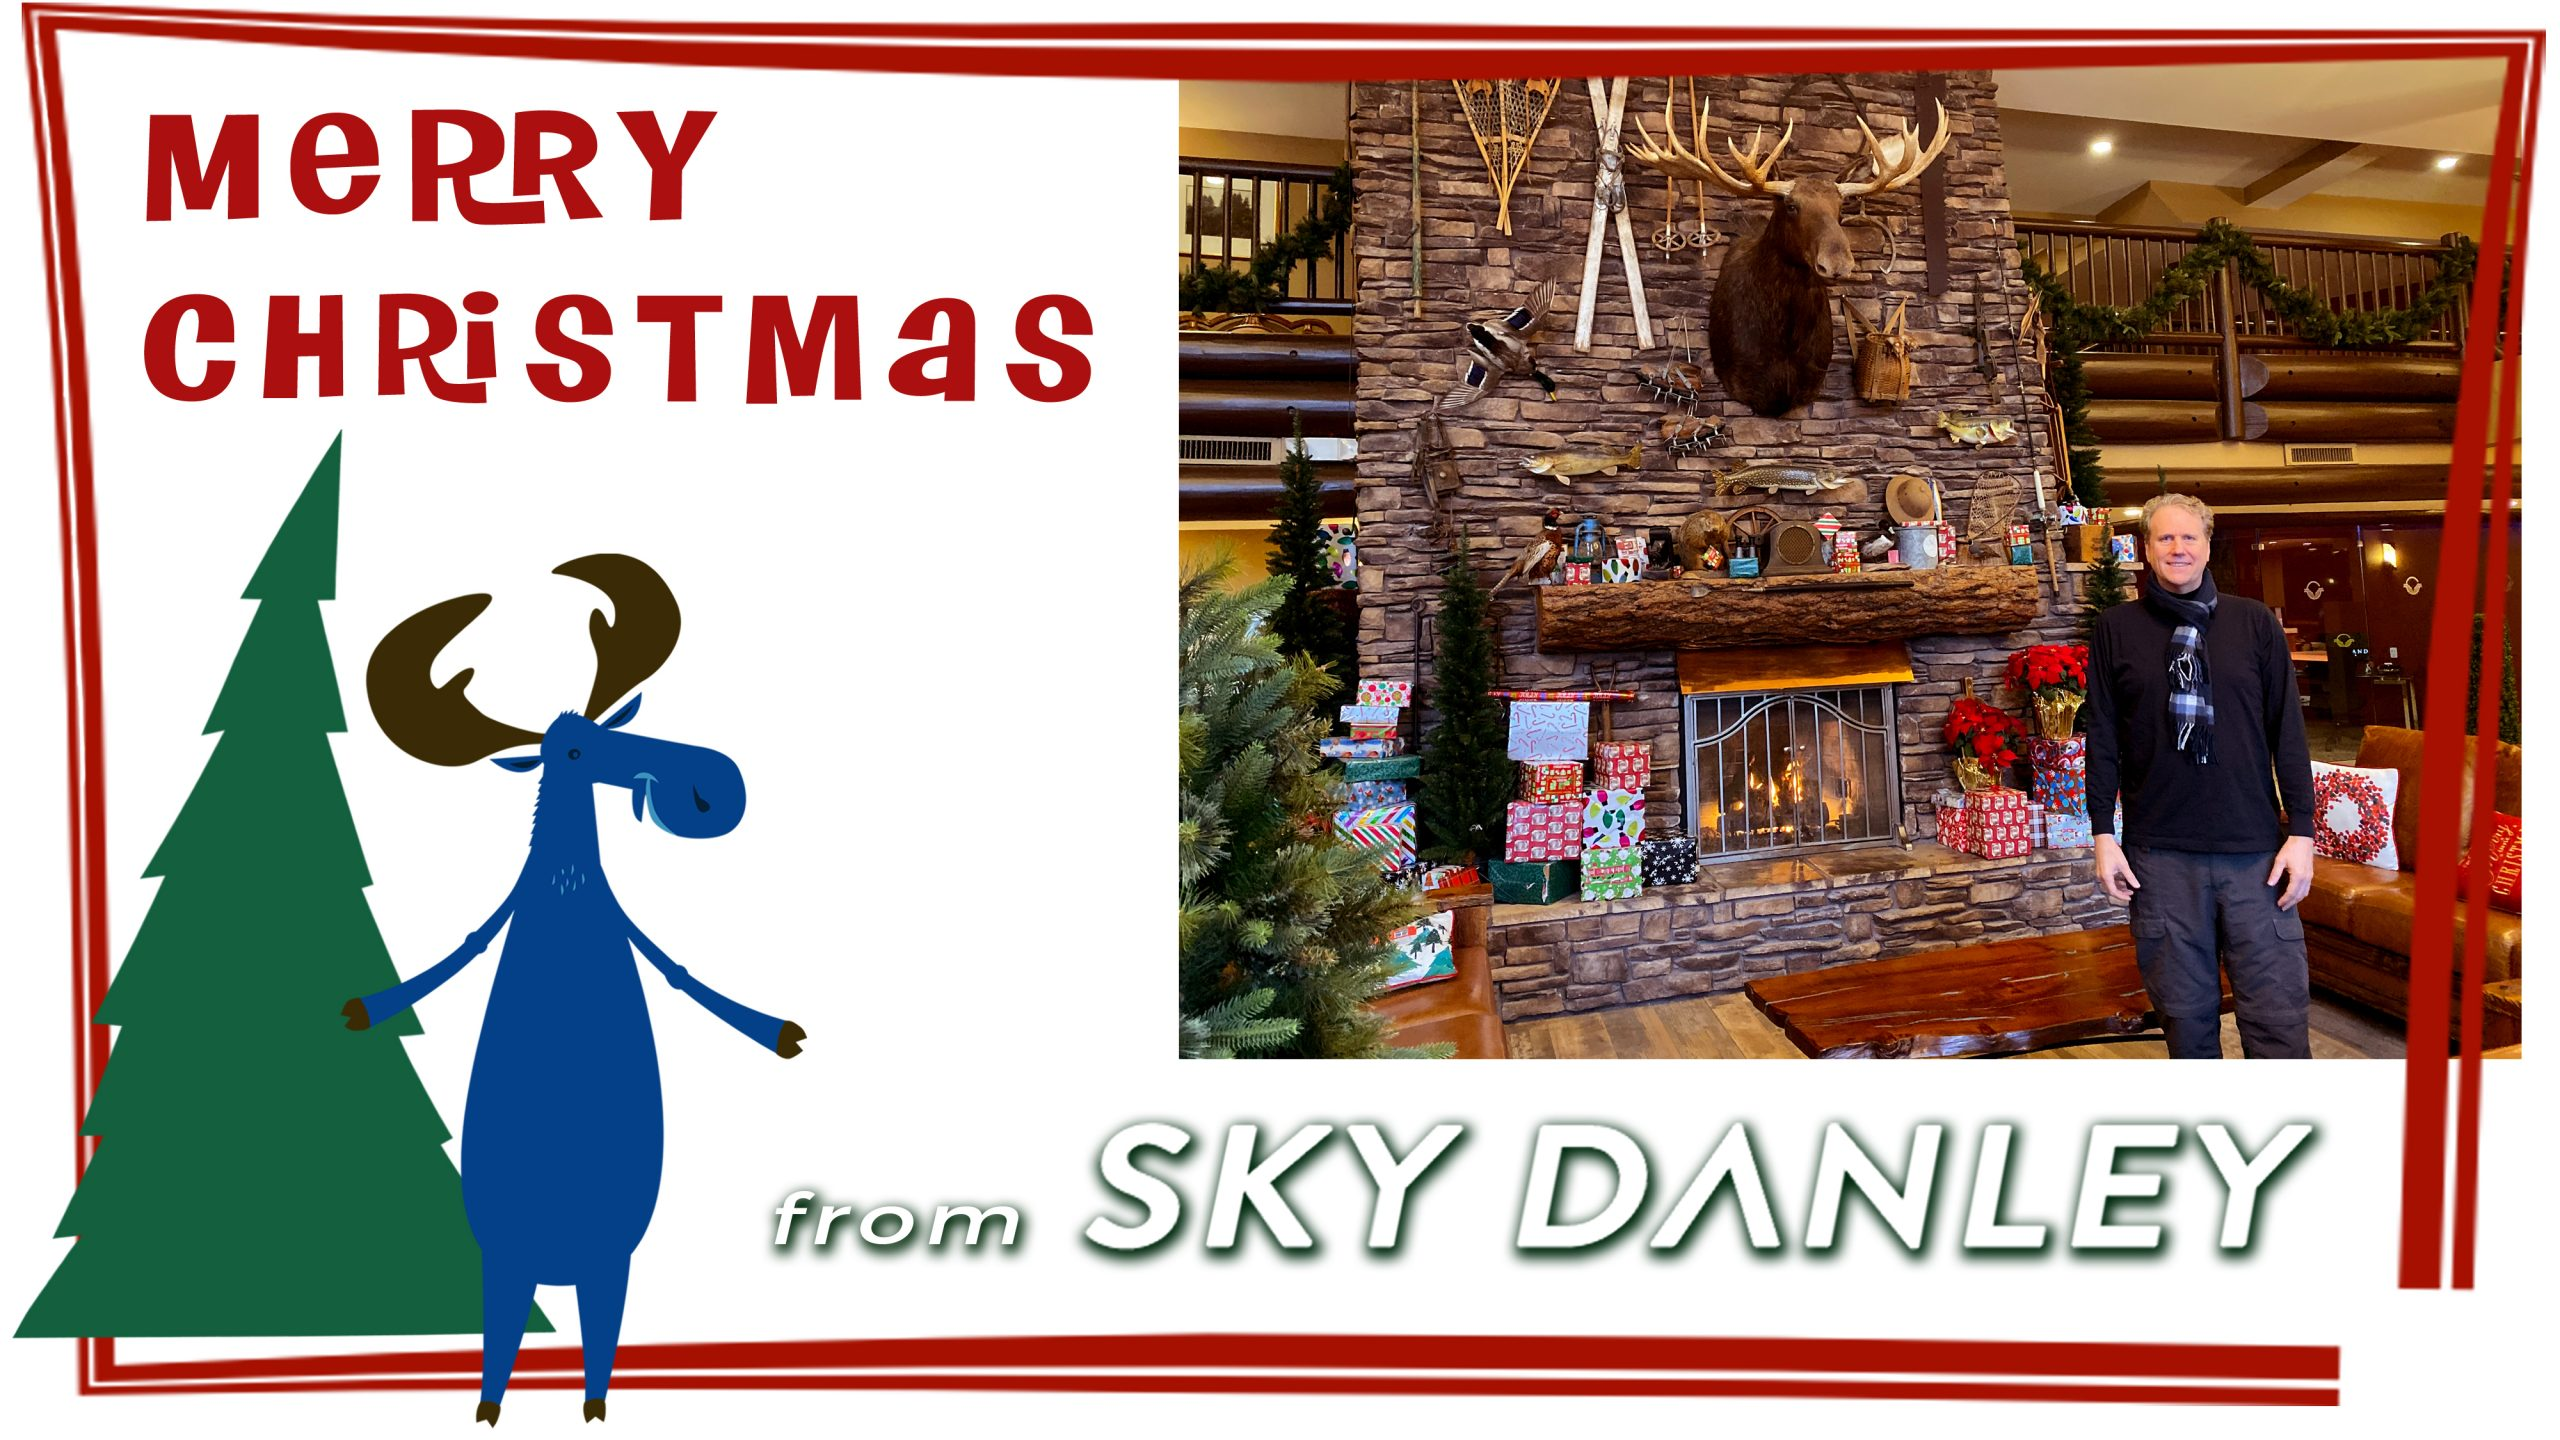 Merry Christmas from Sky Danley